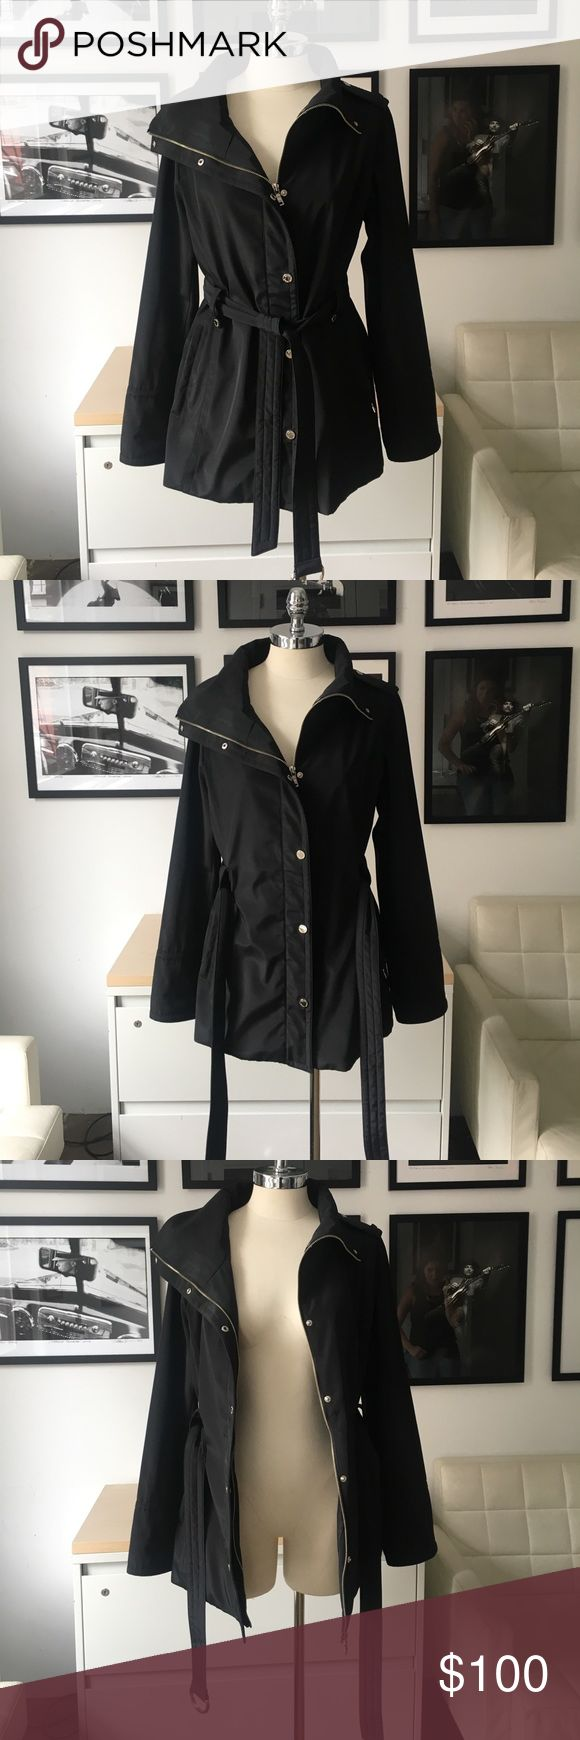 Brand new Andrew Marc waterproof raincoat Brand new Andrew Marc - MARC NEW YORK waterproof raincoat. Originally purchased from Nordstrom. Perfect for the spring and summer. Can also be used as a windbreaker. It's comfortable and fits great! Andrew Marc Jackets & Coats